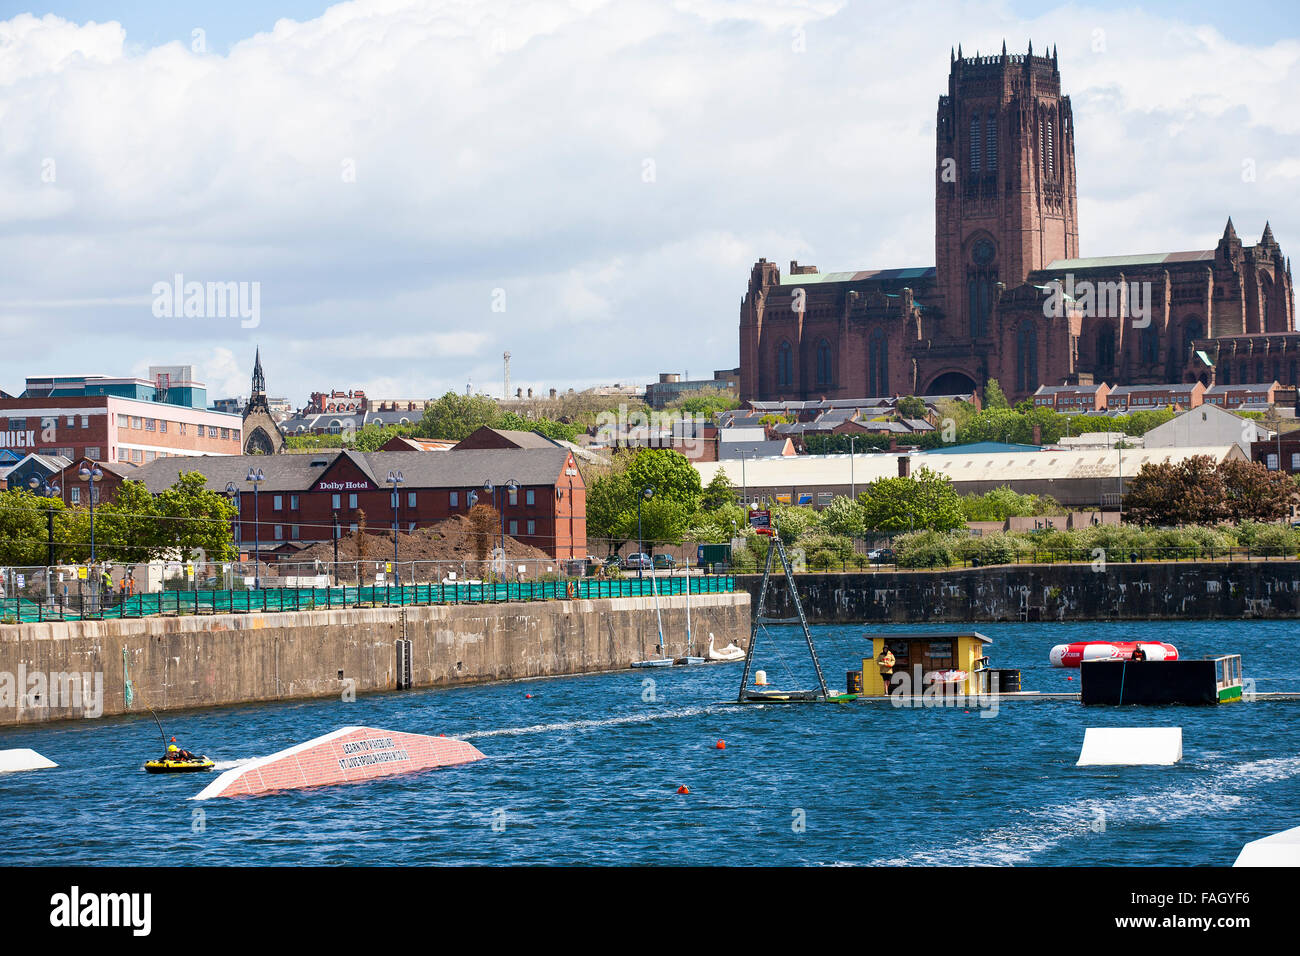 A wake boarding center and school in the Albert dock complex in the shadow of Liverpool's massive Anglican Cathedral. Stock Photo